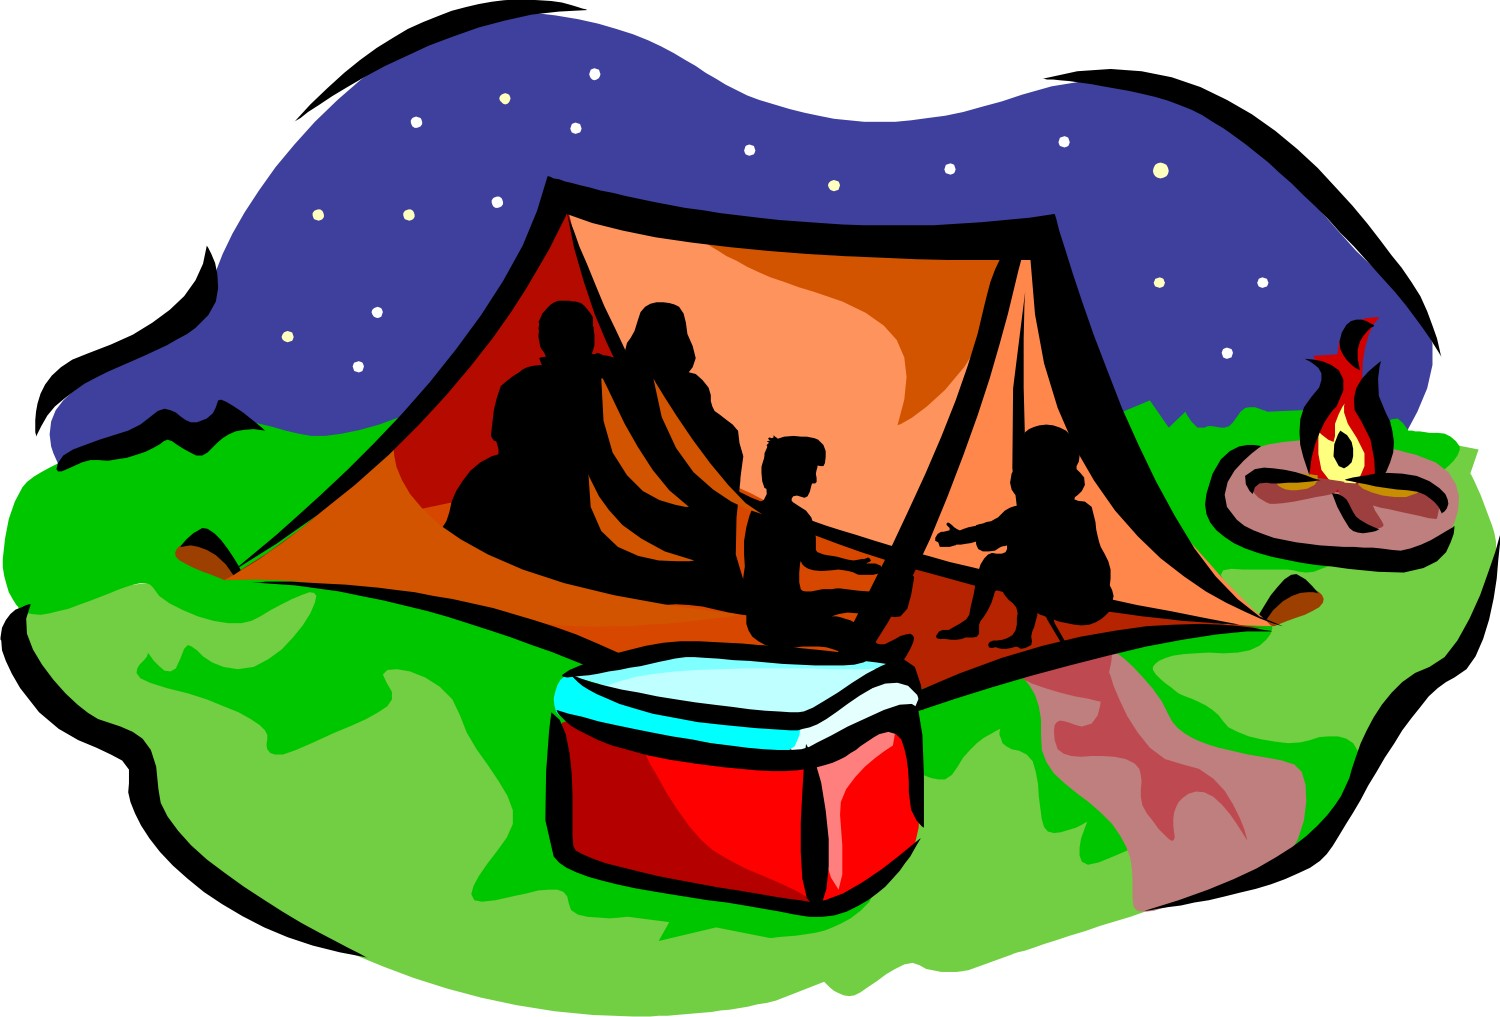 Camping books clipart image free download Kids camping clipart dromfib top 2 - Clipartix image free download